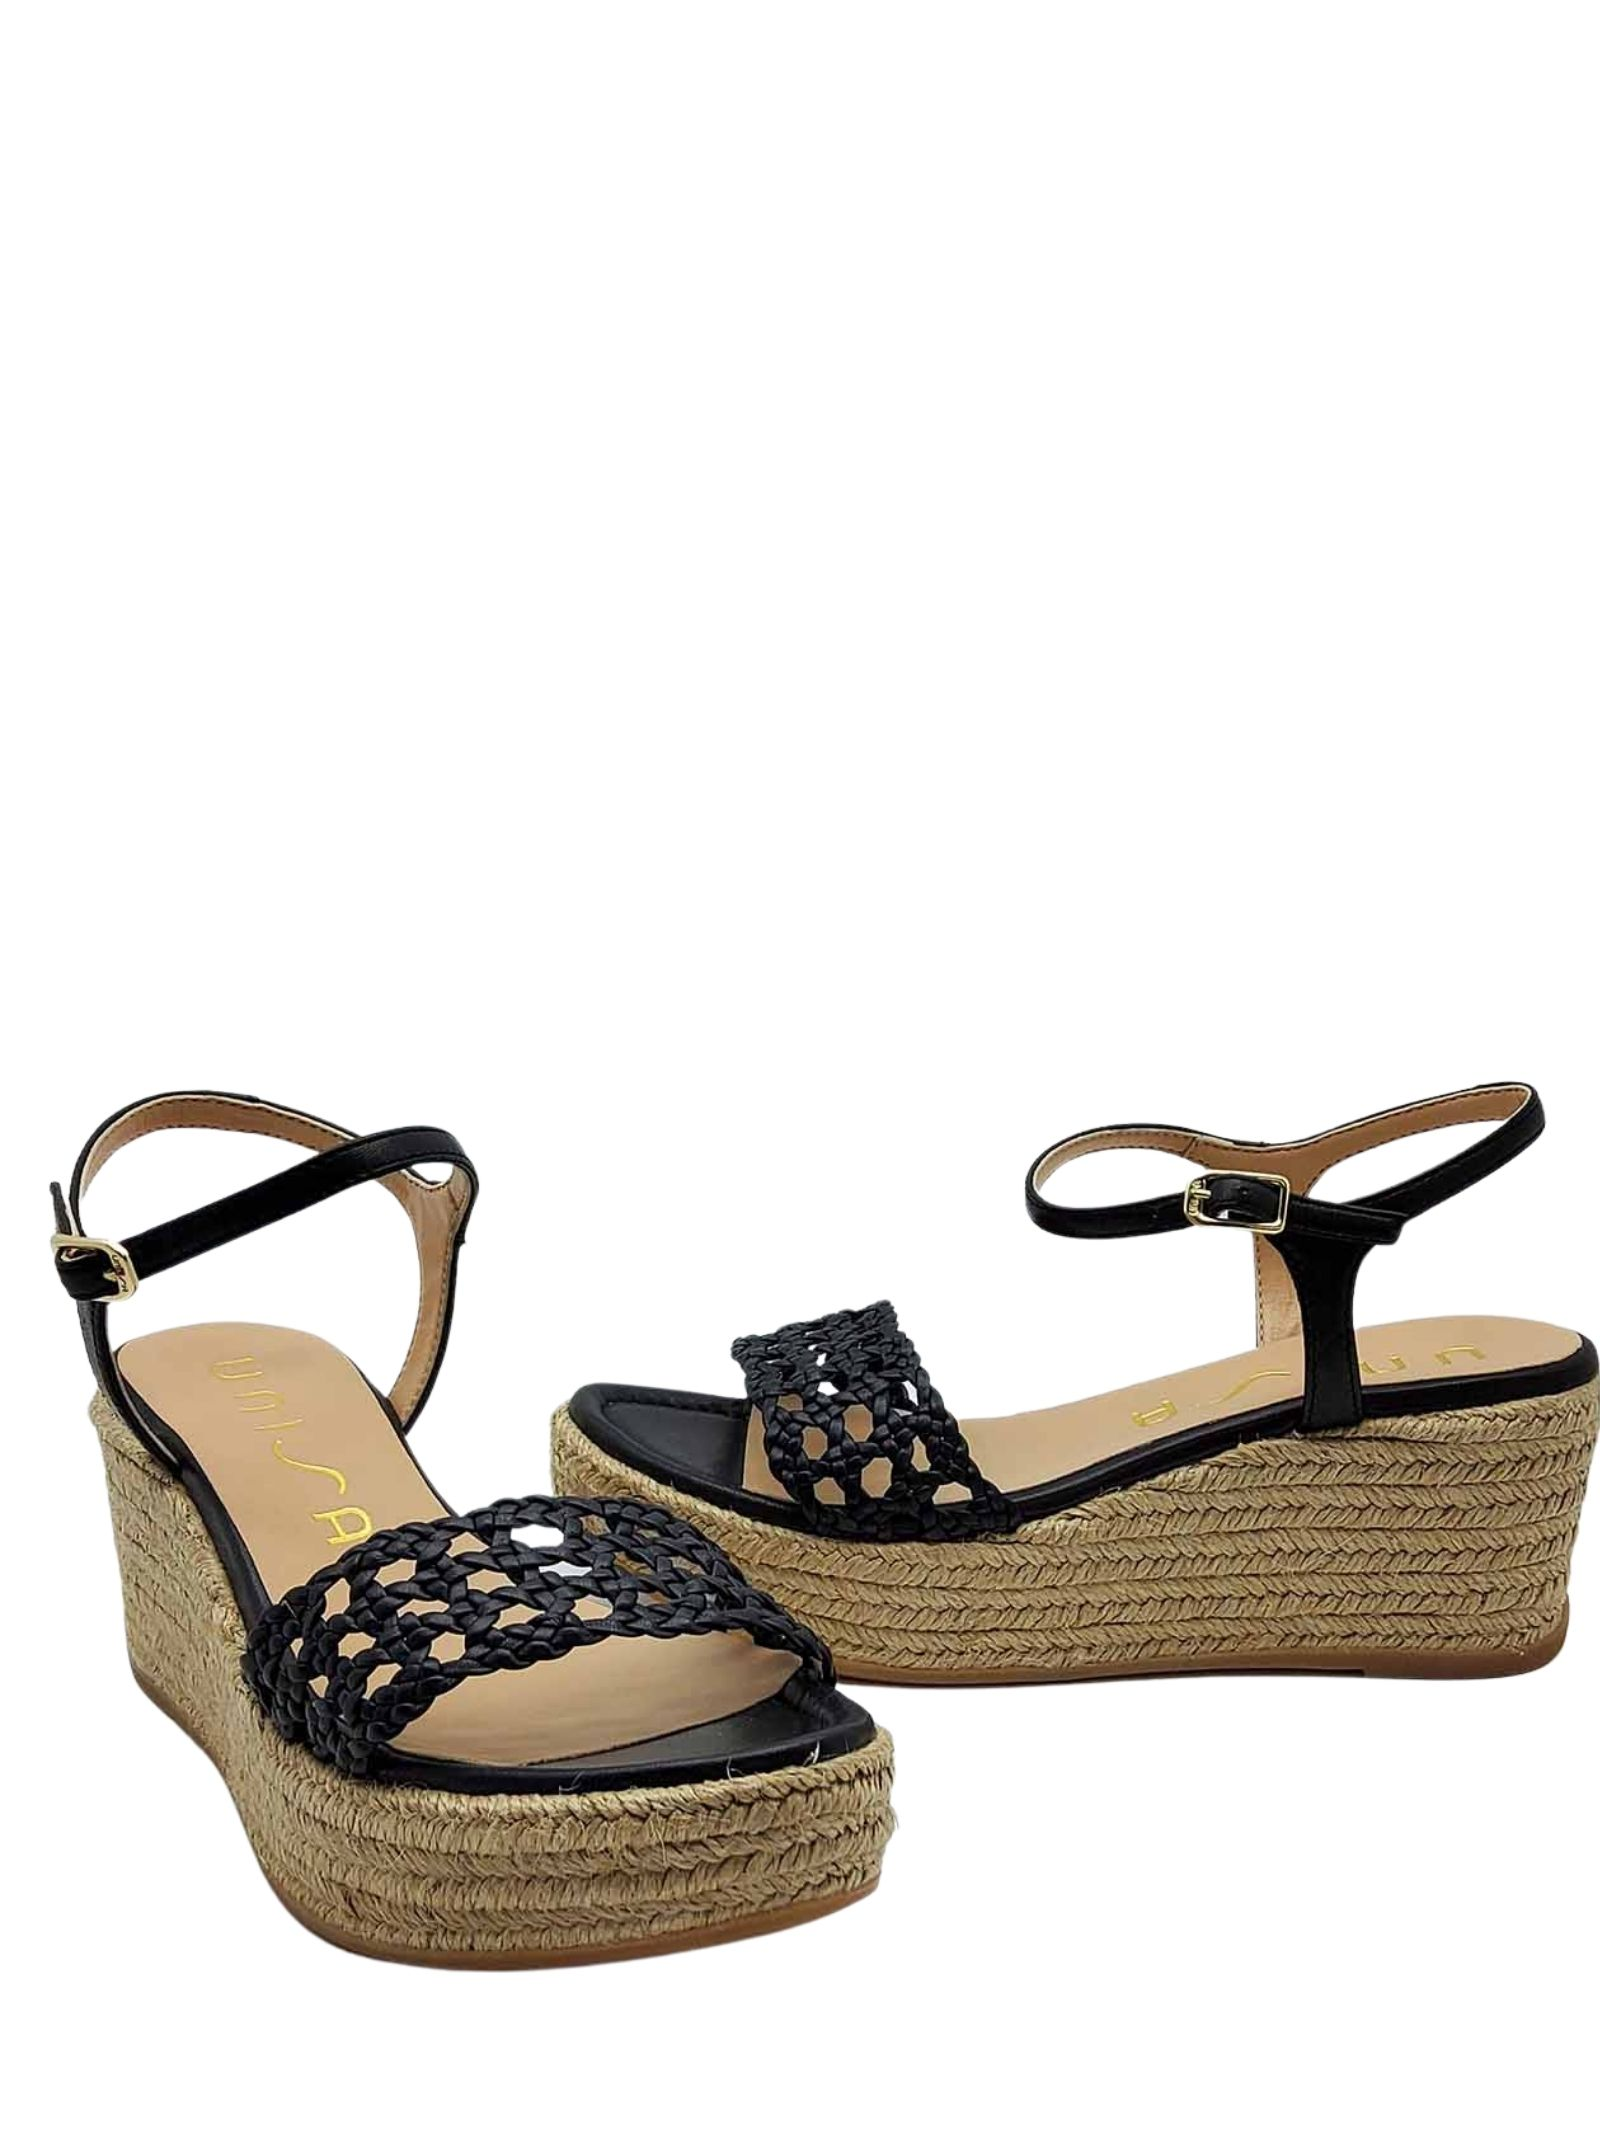 Women's Shoes Black Leather Sandals With Rope Wedge and Ankle Strap Unisa | Wedge Sandals | KAYTO001